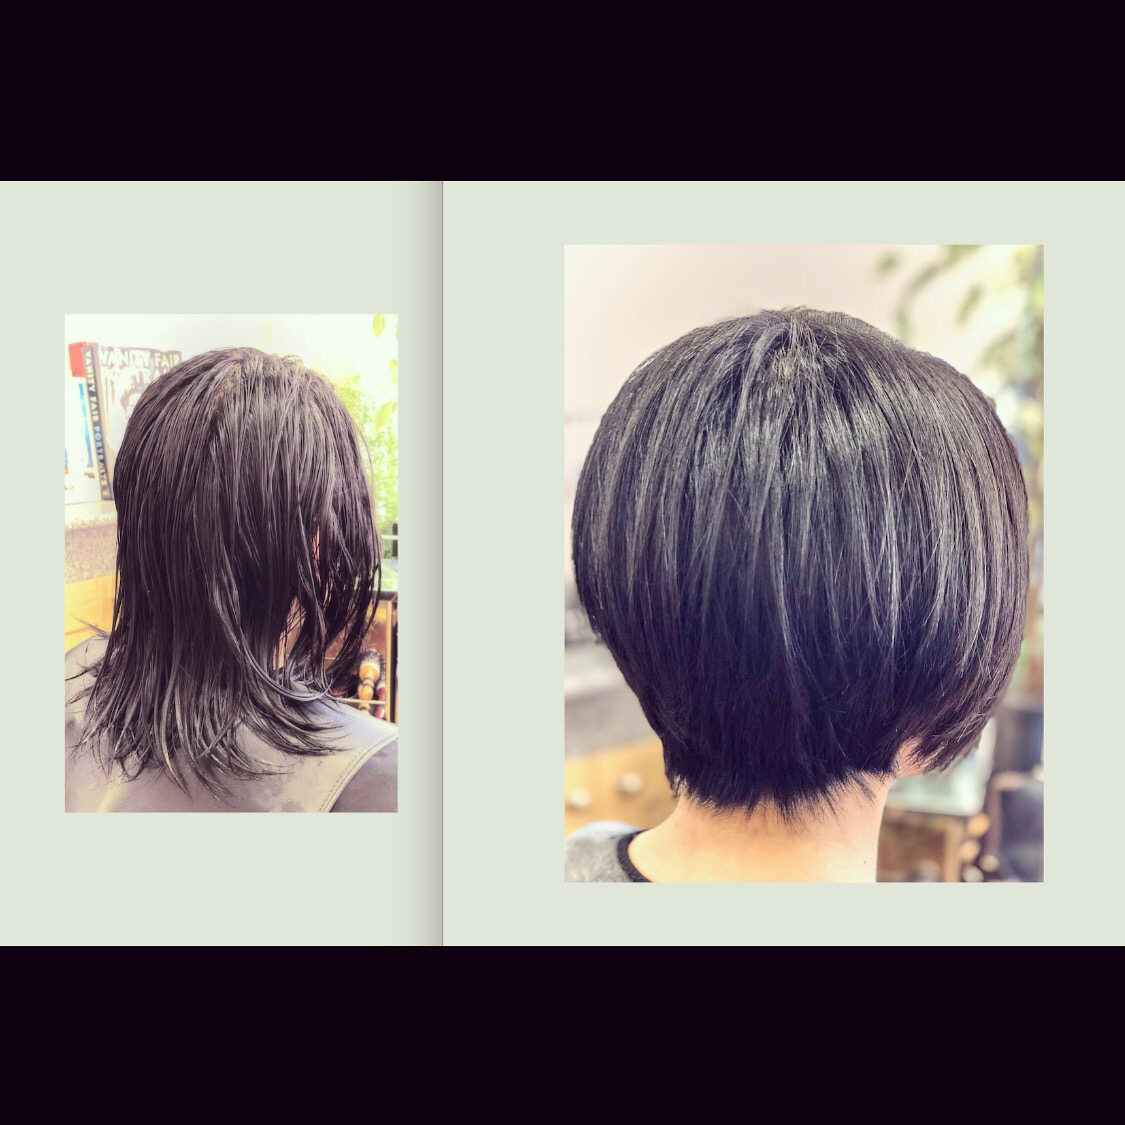 Medium to short | TOKITO Hair